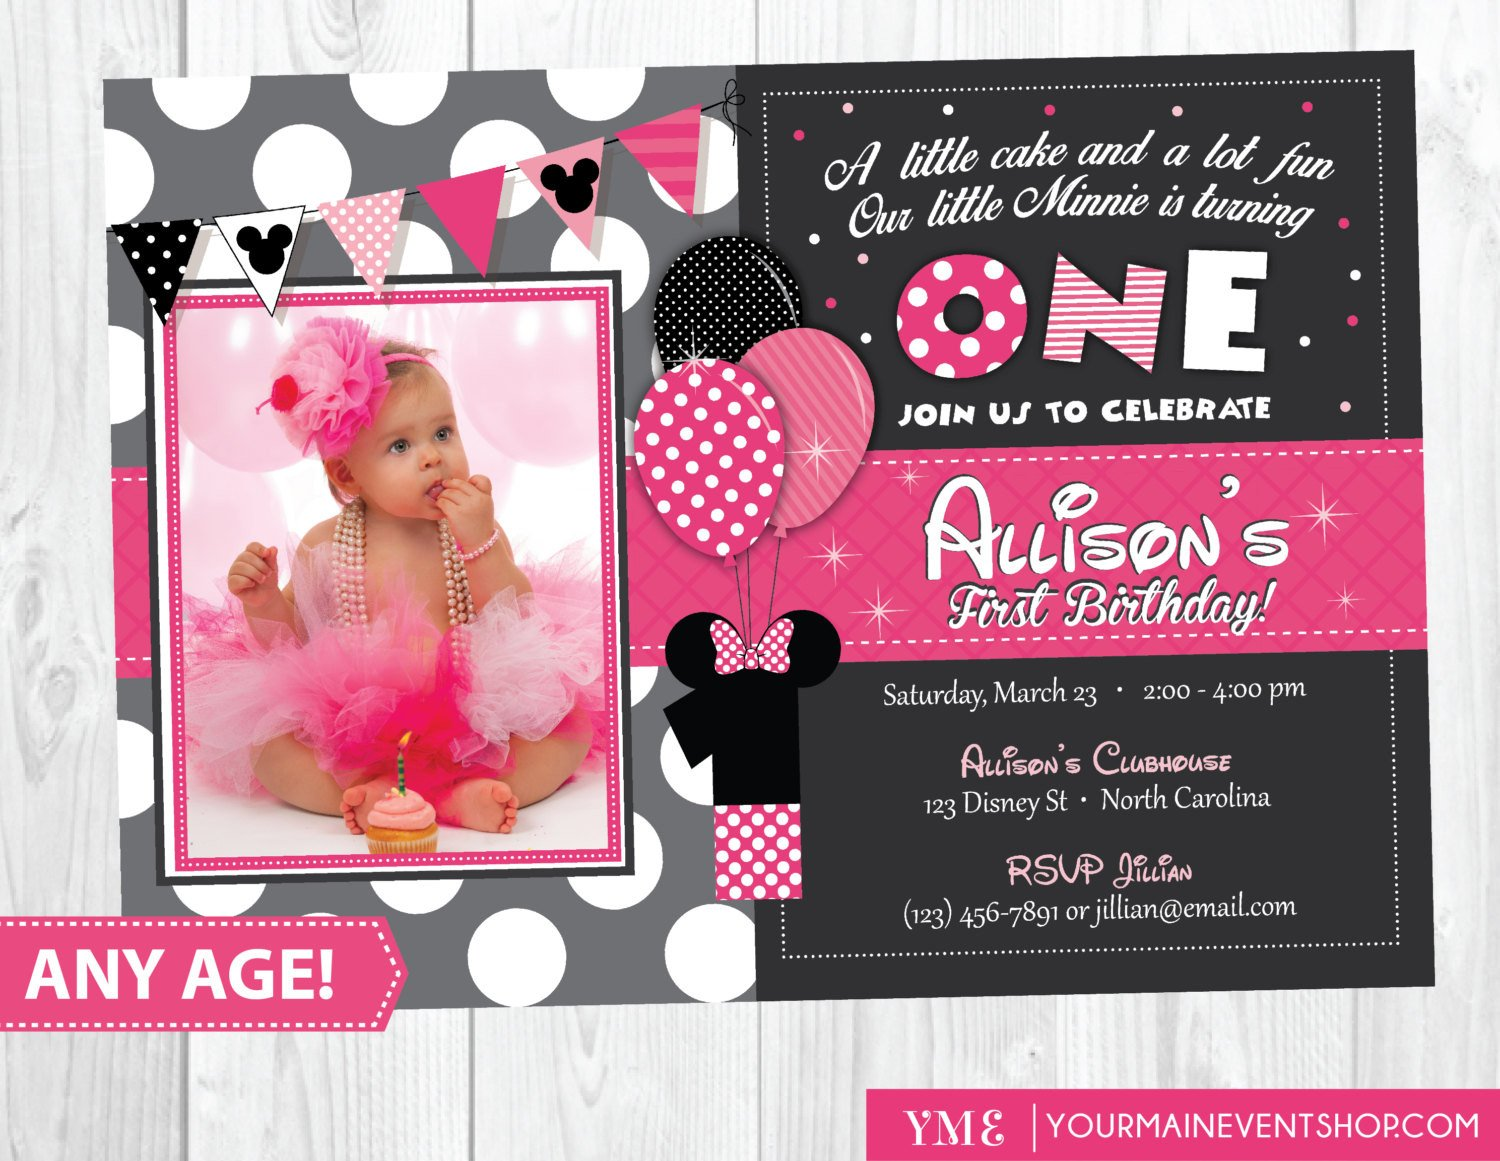 Minnie Mouse Party Invitations Minnie Mouse Birthday Invitation Minnie Mouse Inspired